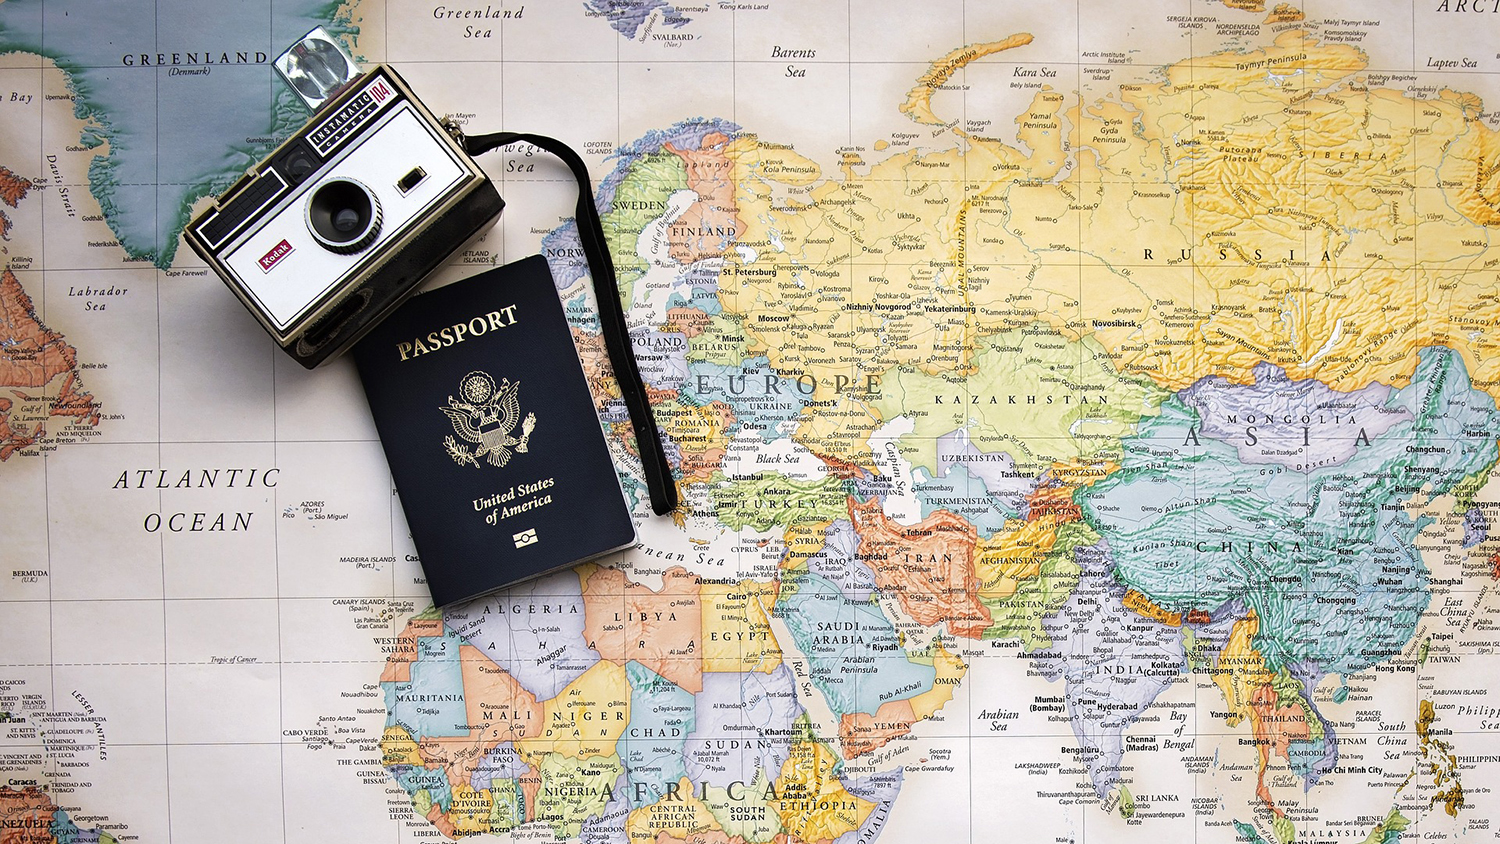 Passport and camera on top of a map